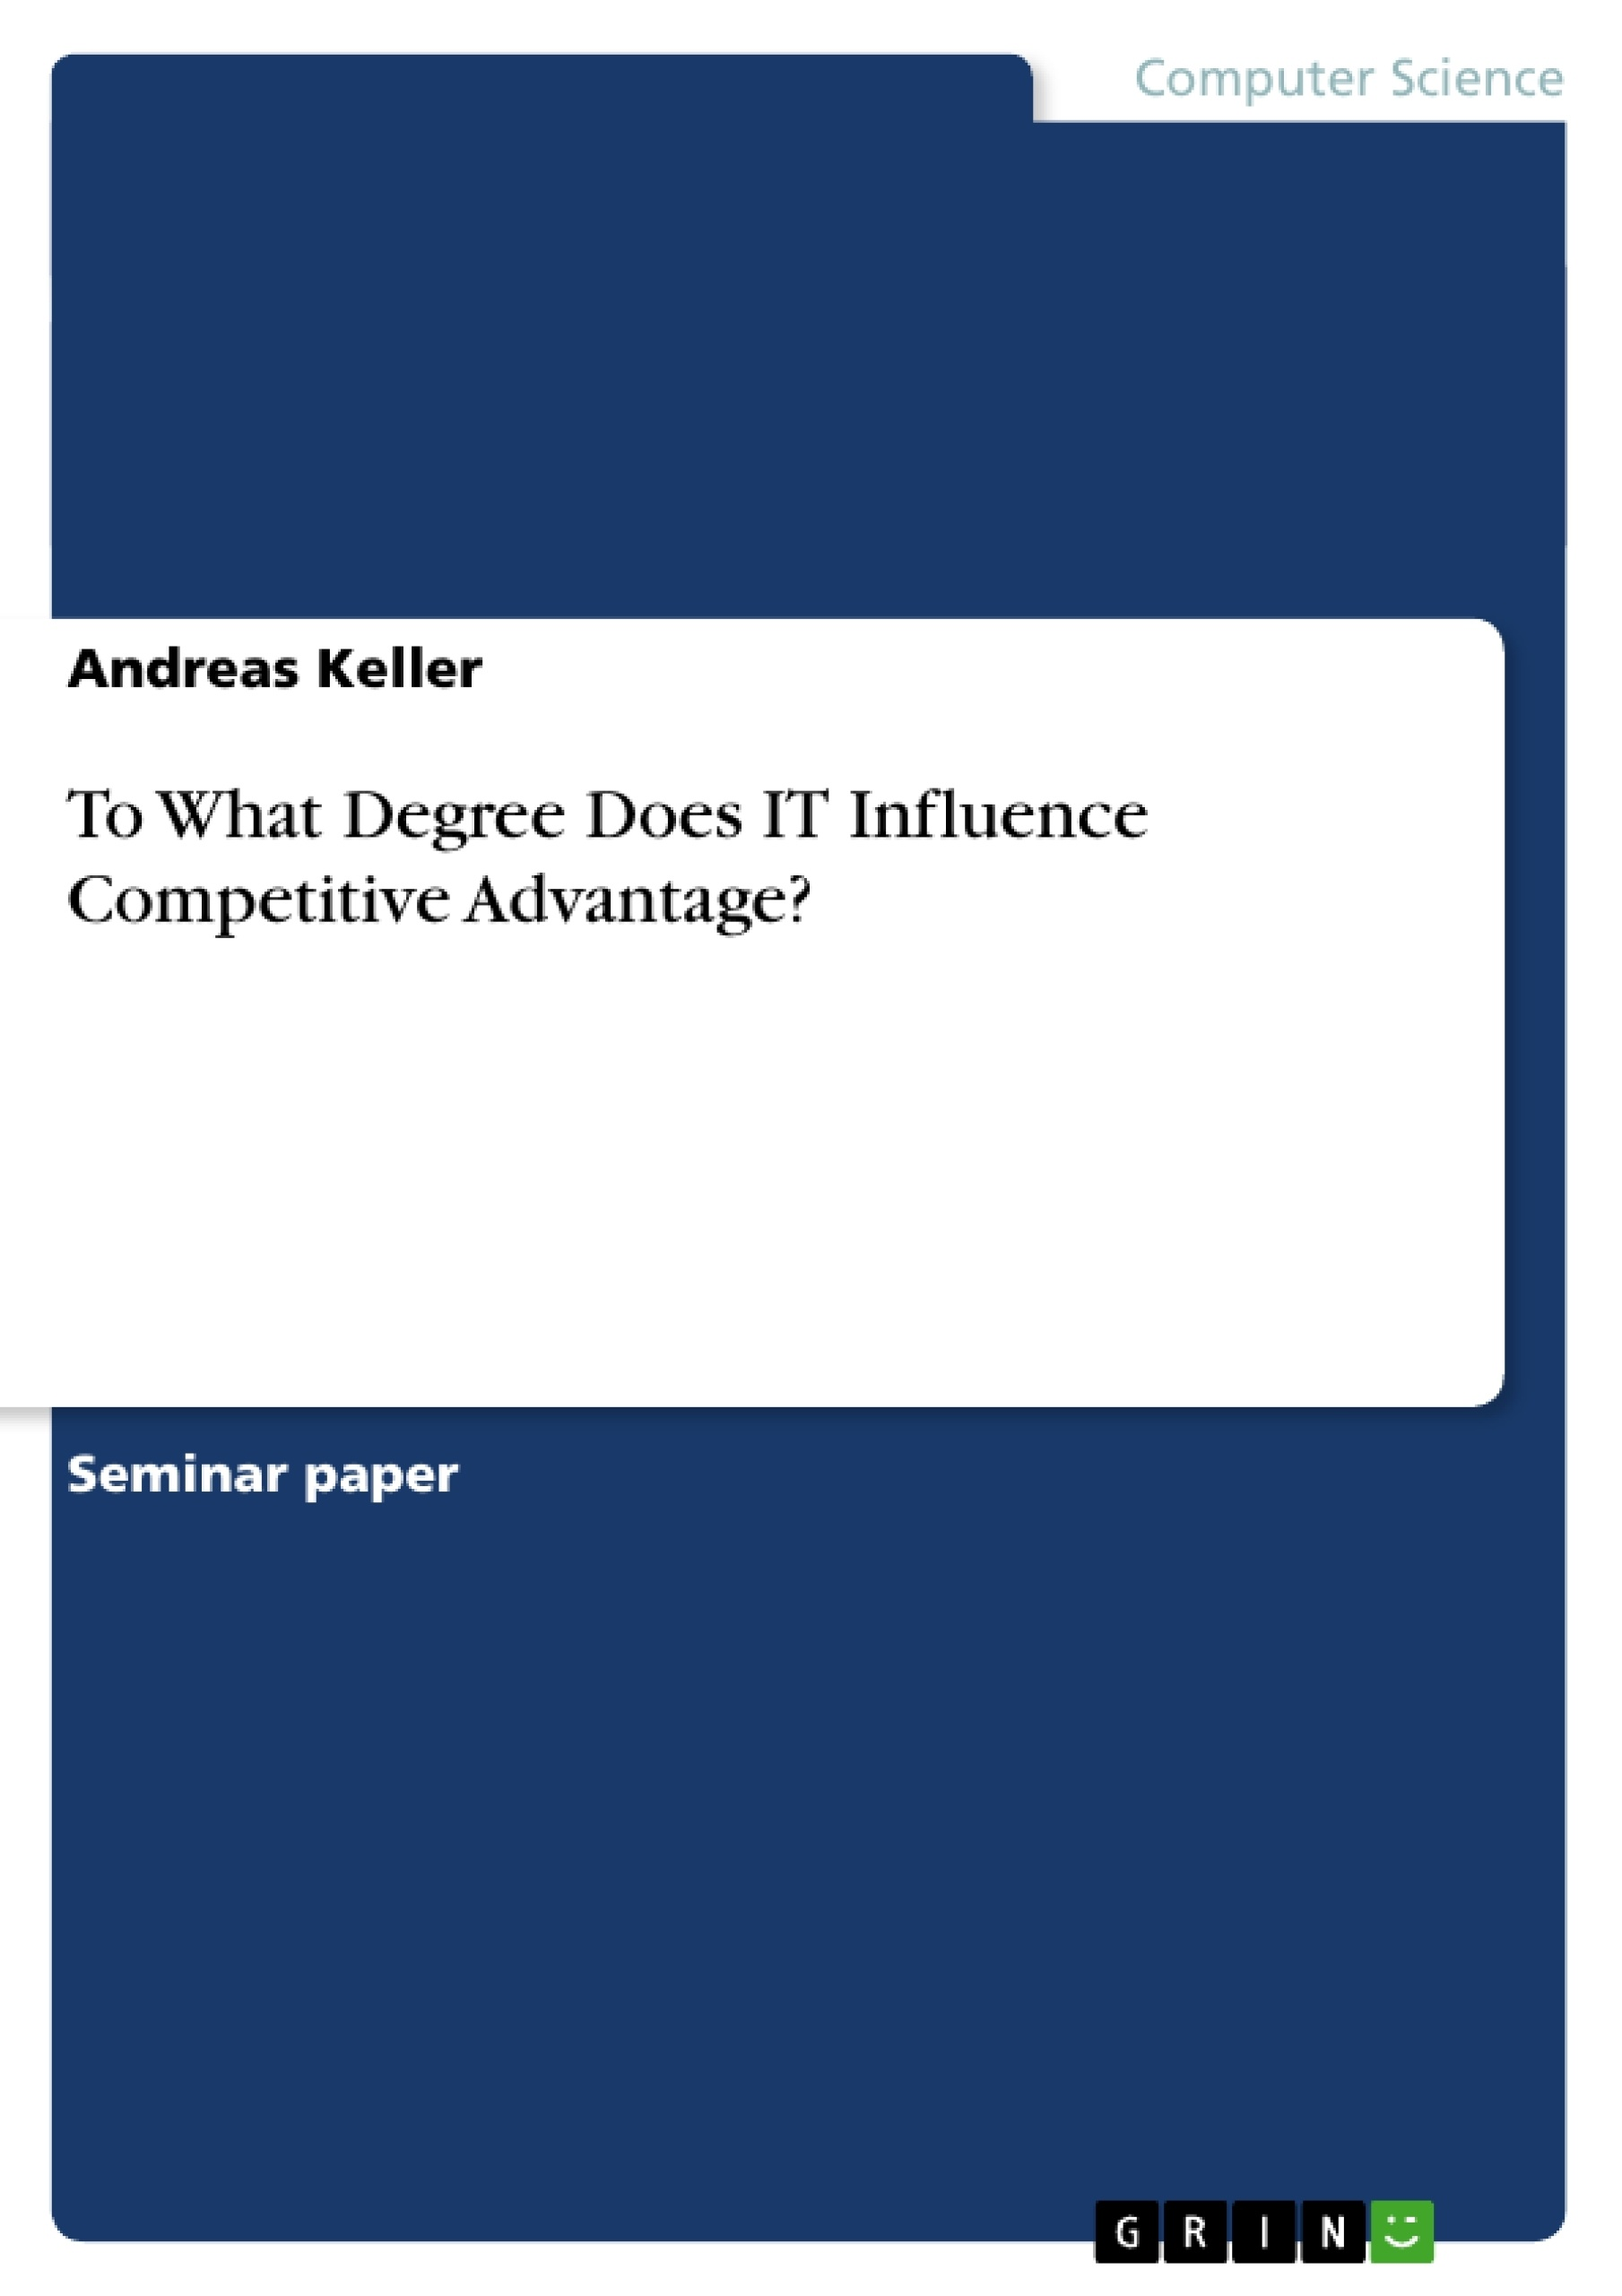 Title: To What Degree Does IT Influence Competitive Advantage?